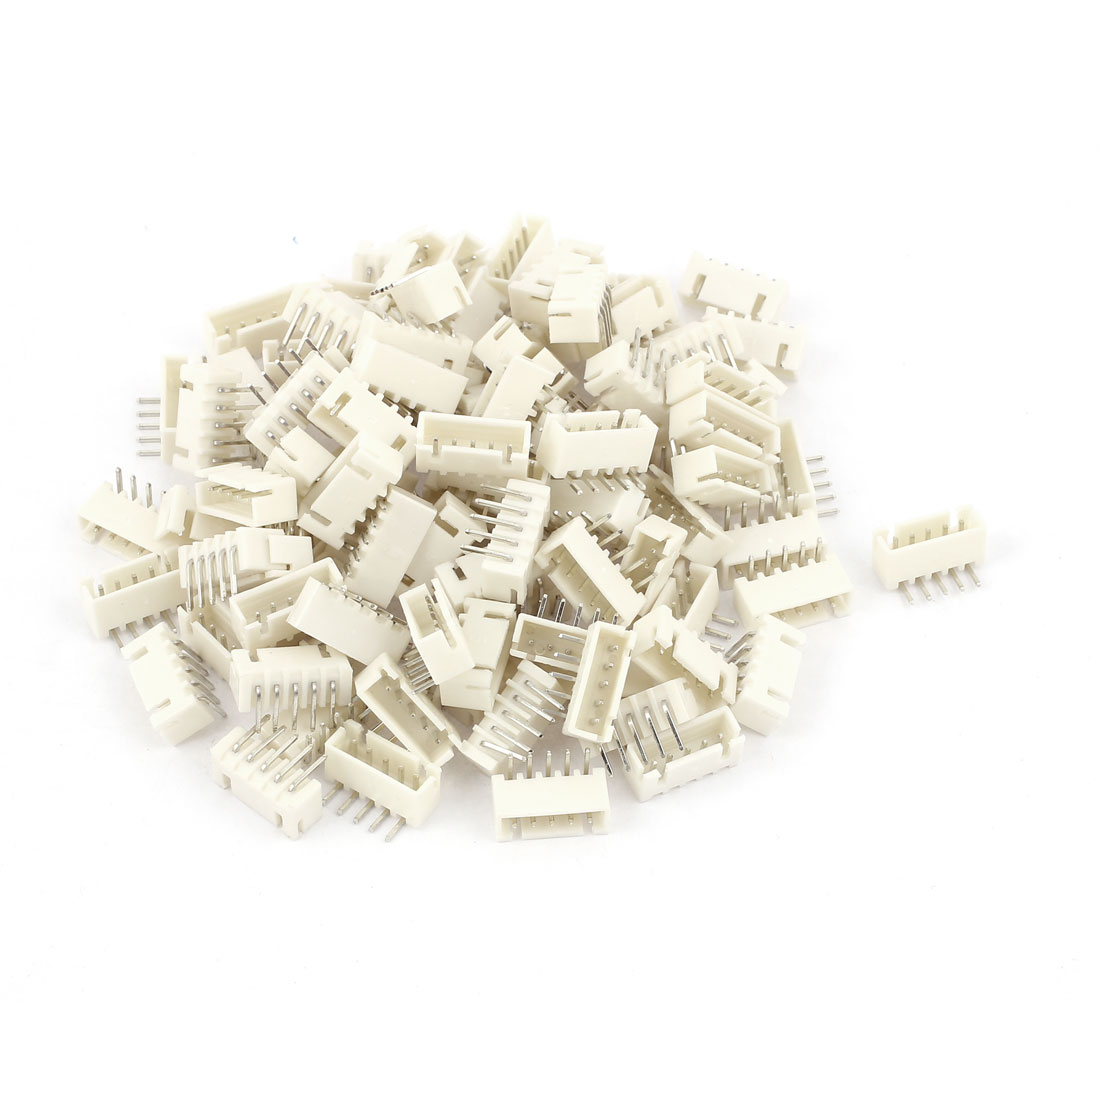 100pcs 2.54mm Pitch Right Angle 5 Pins XH Header Socket Male JST Connector